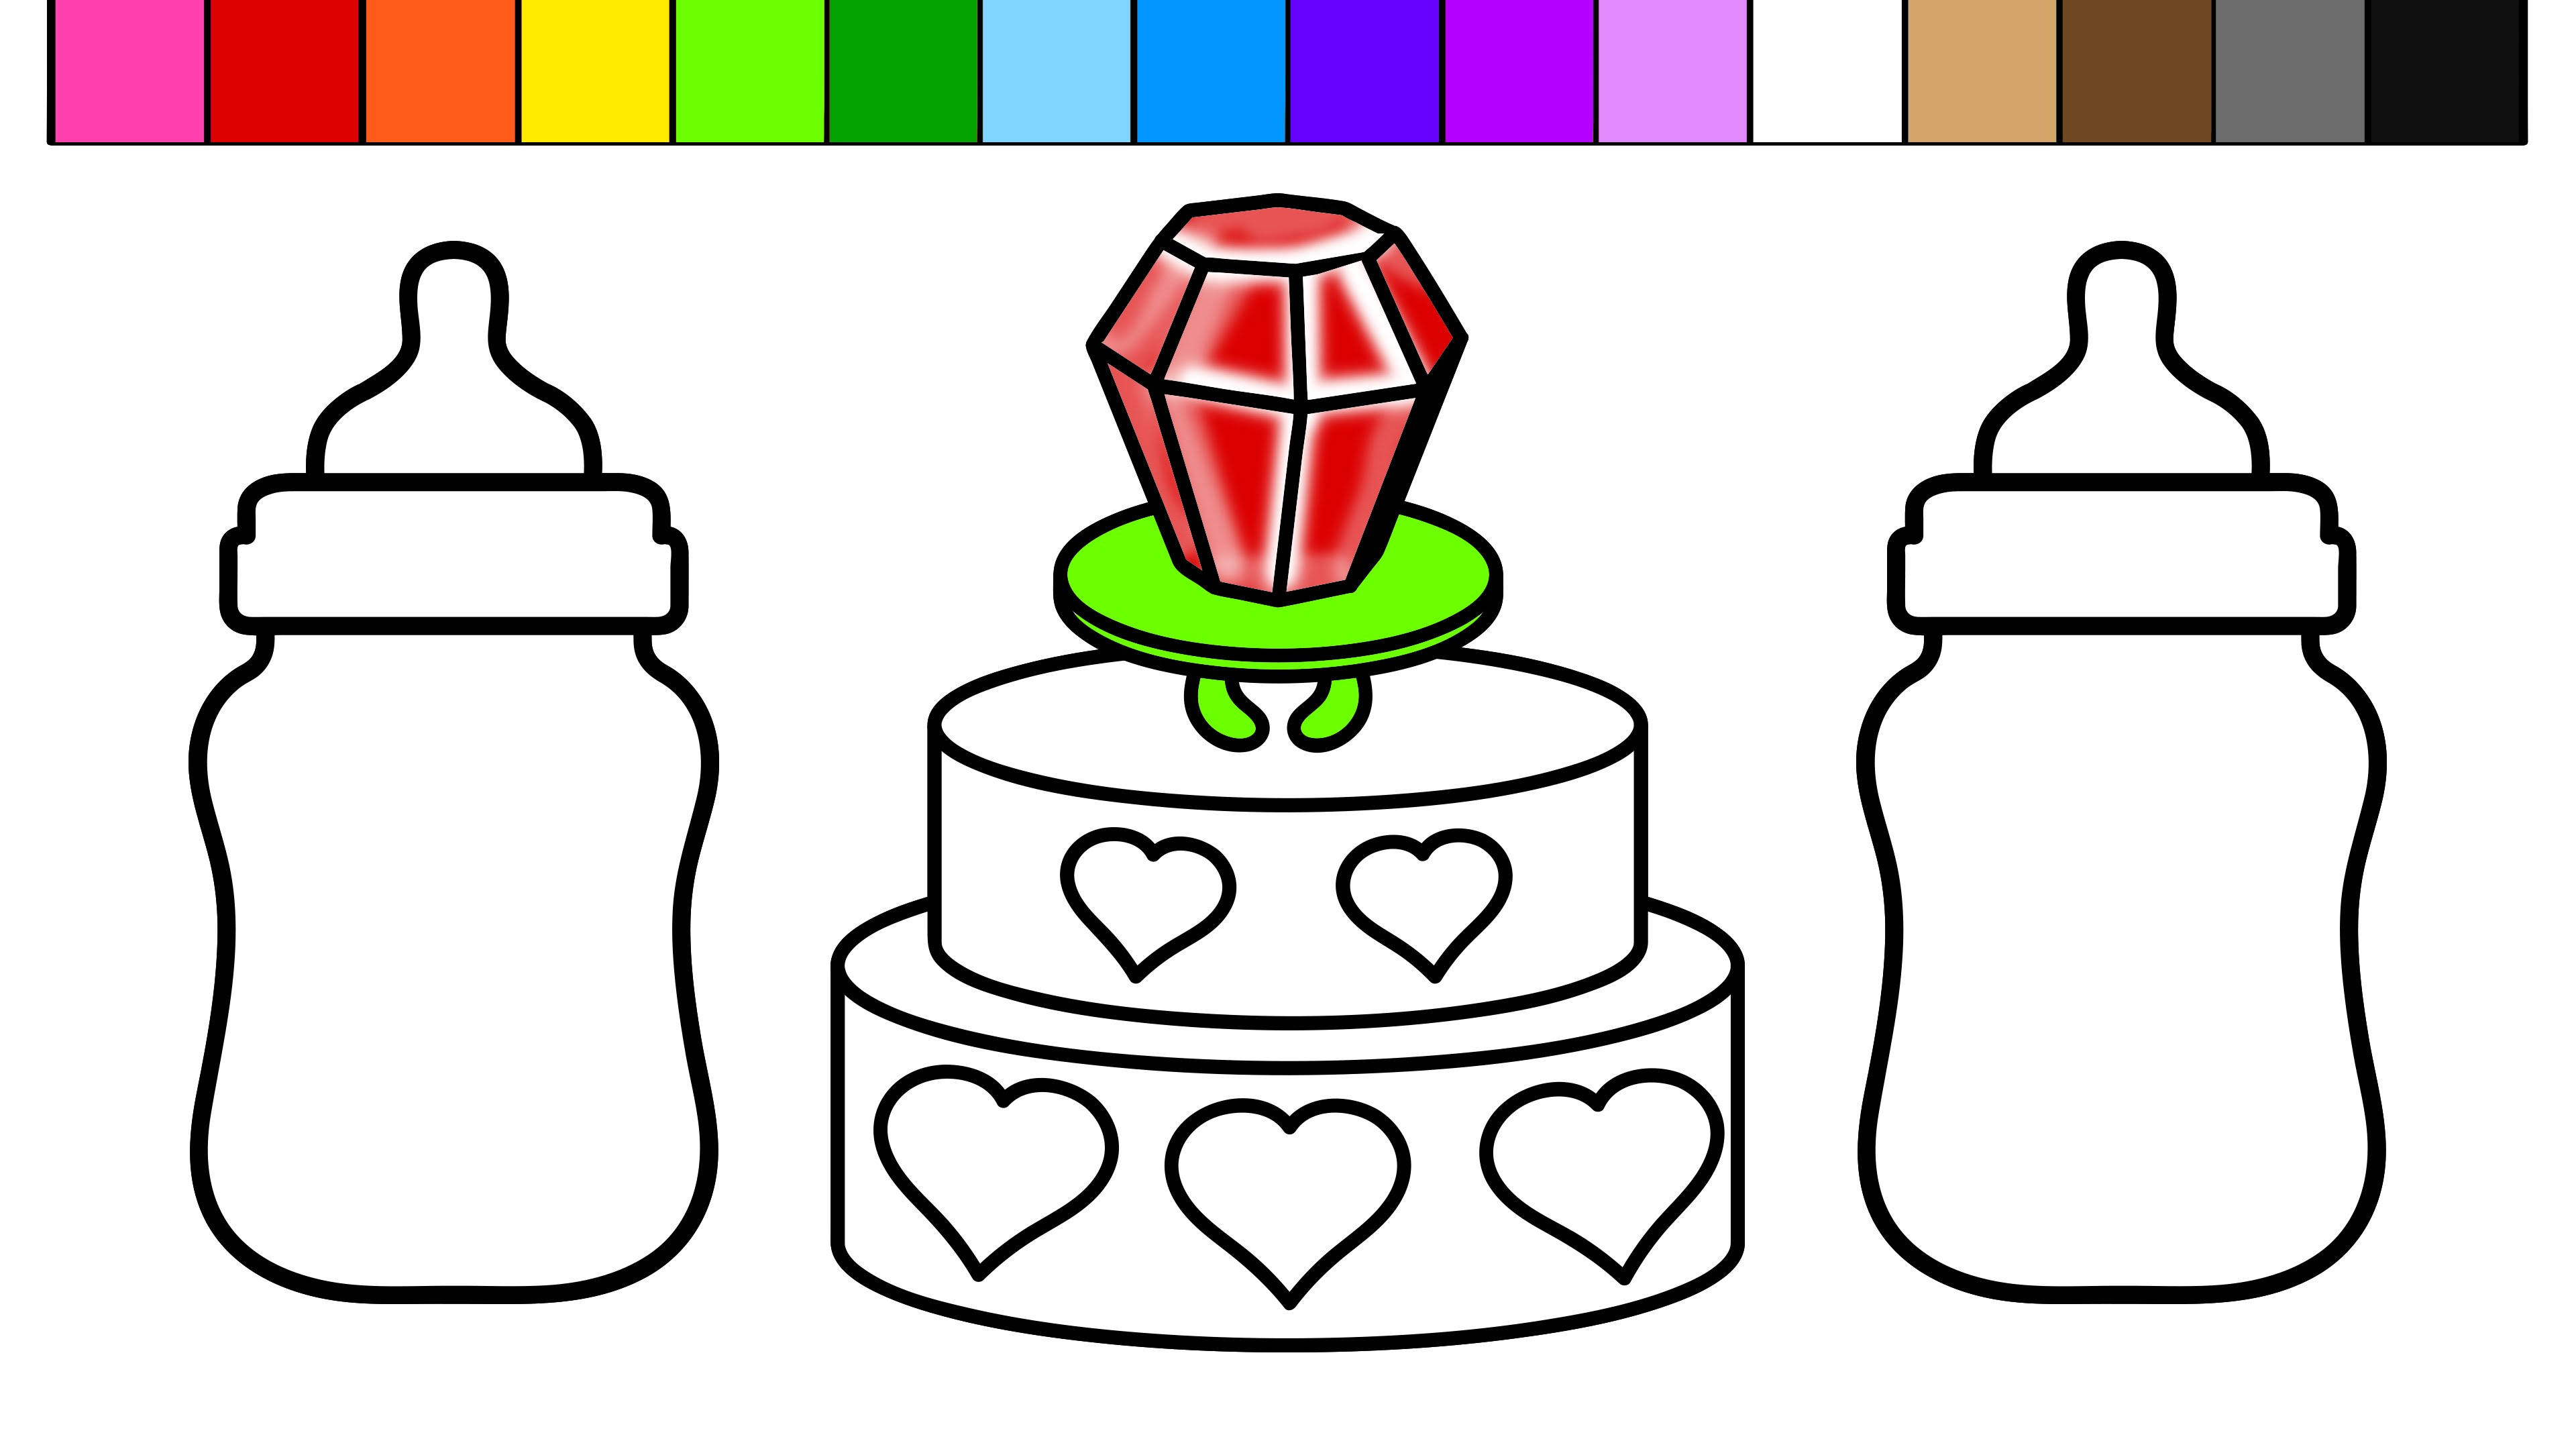 3840x2160 Learn Colors For Kids And Color This Ring Pop Heart Birthday Cake